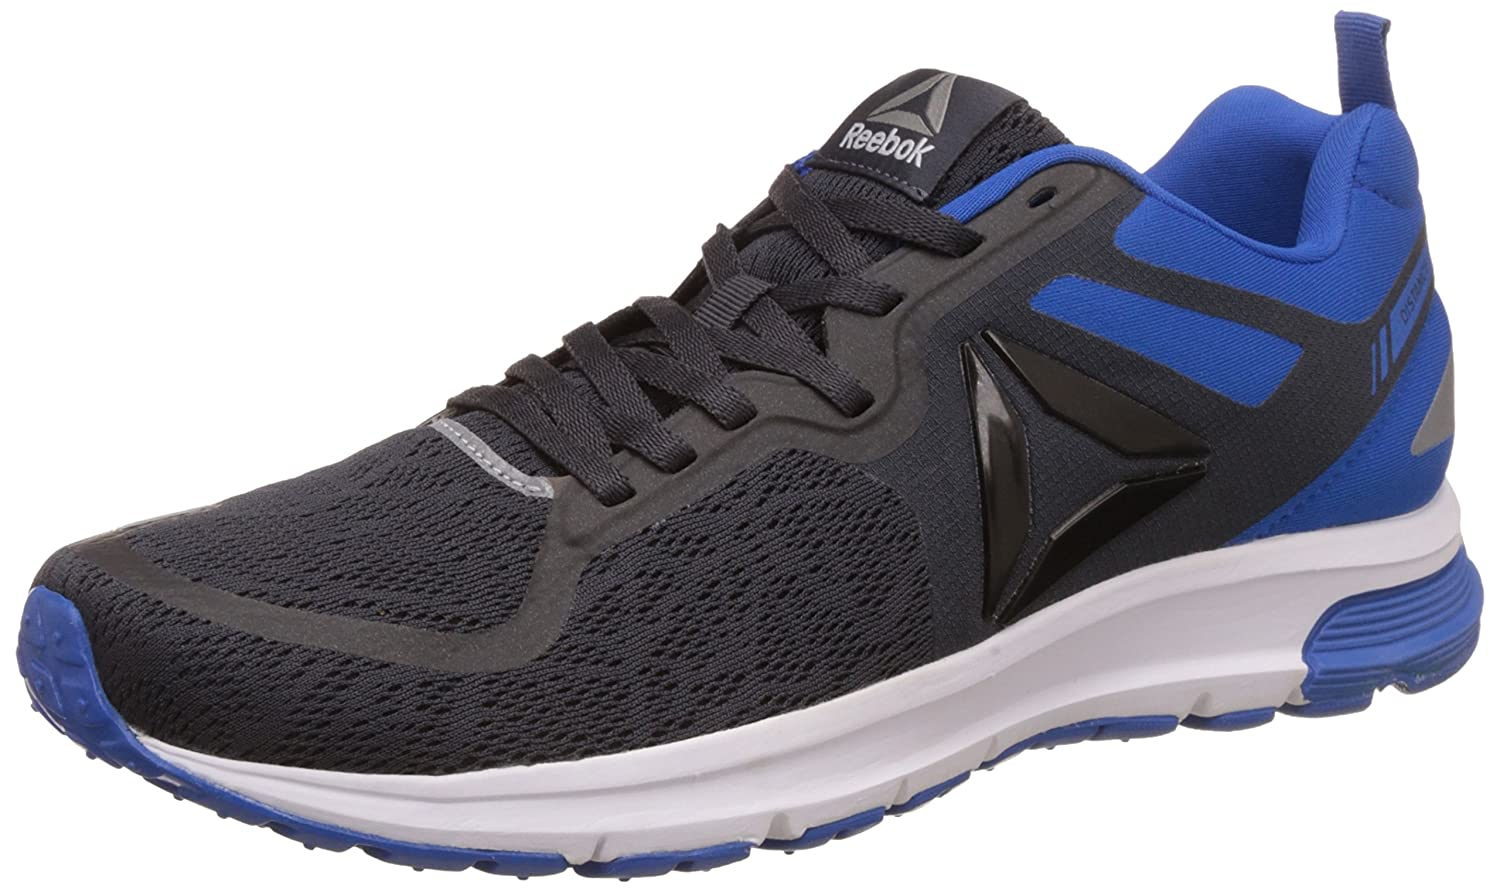 466df648190d Reebok Men s Running Shoes  Buy Online at Low Prices in India - Amazon.in